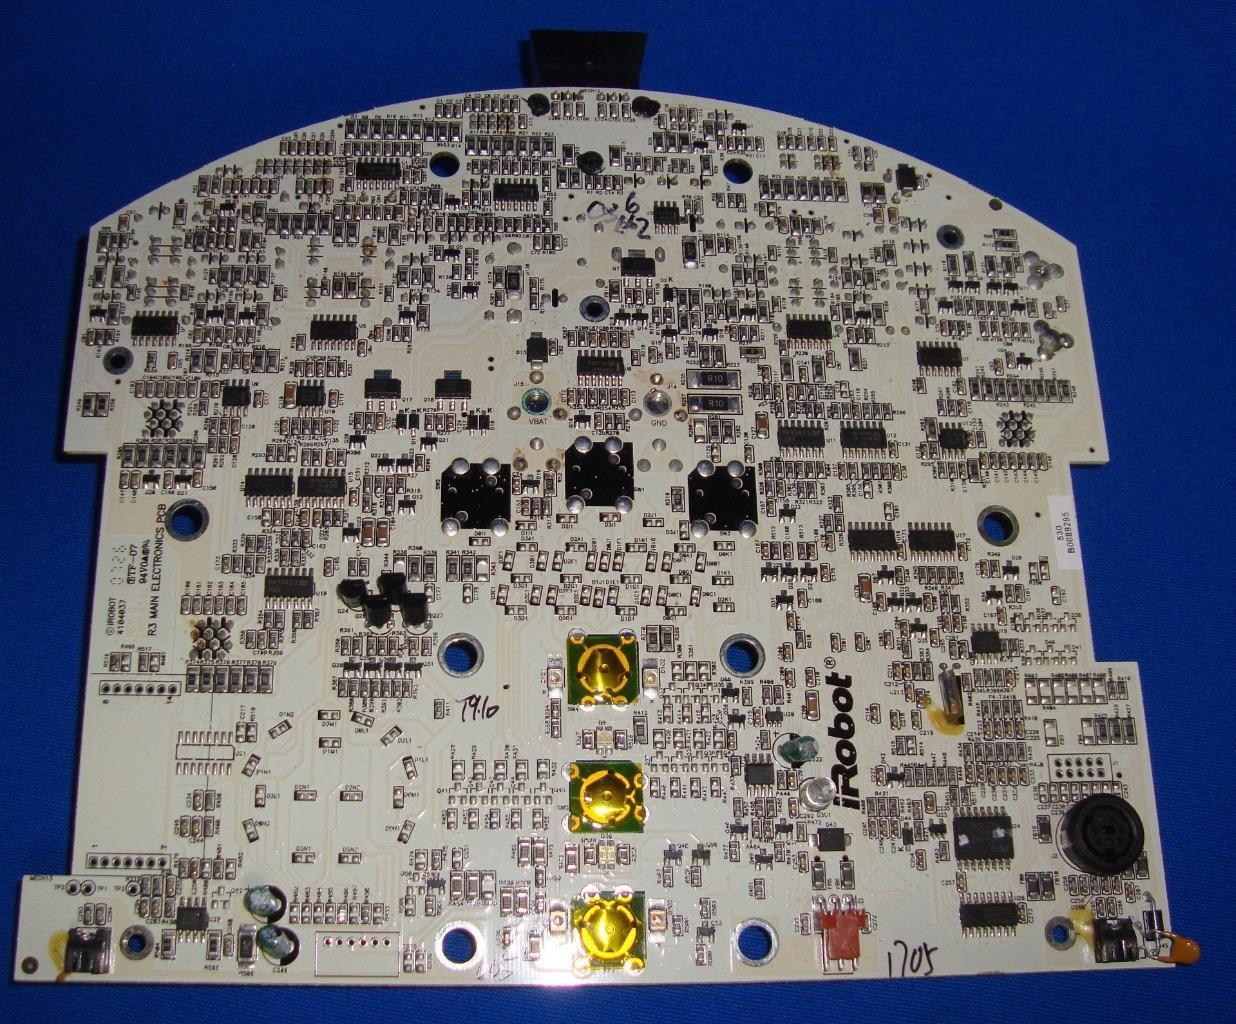 Primary image for iROBOT ROOMBA 530. REPLACEMENT PARTS MOTHERBOARD MAIN PCB MOTHERBOARD